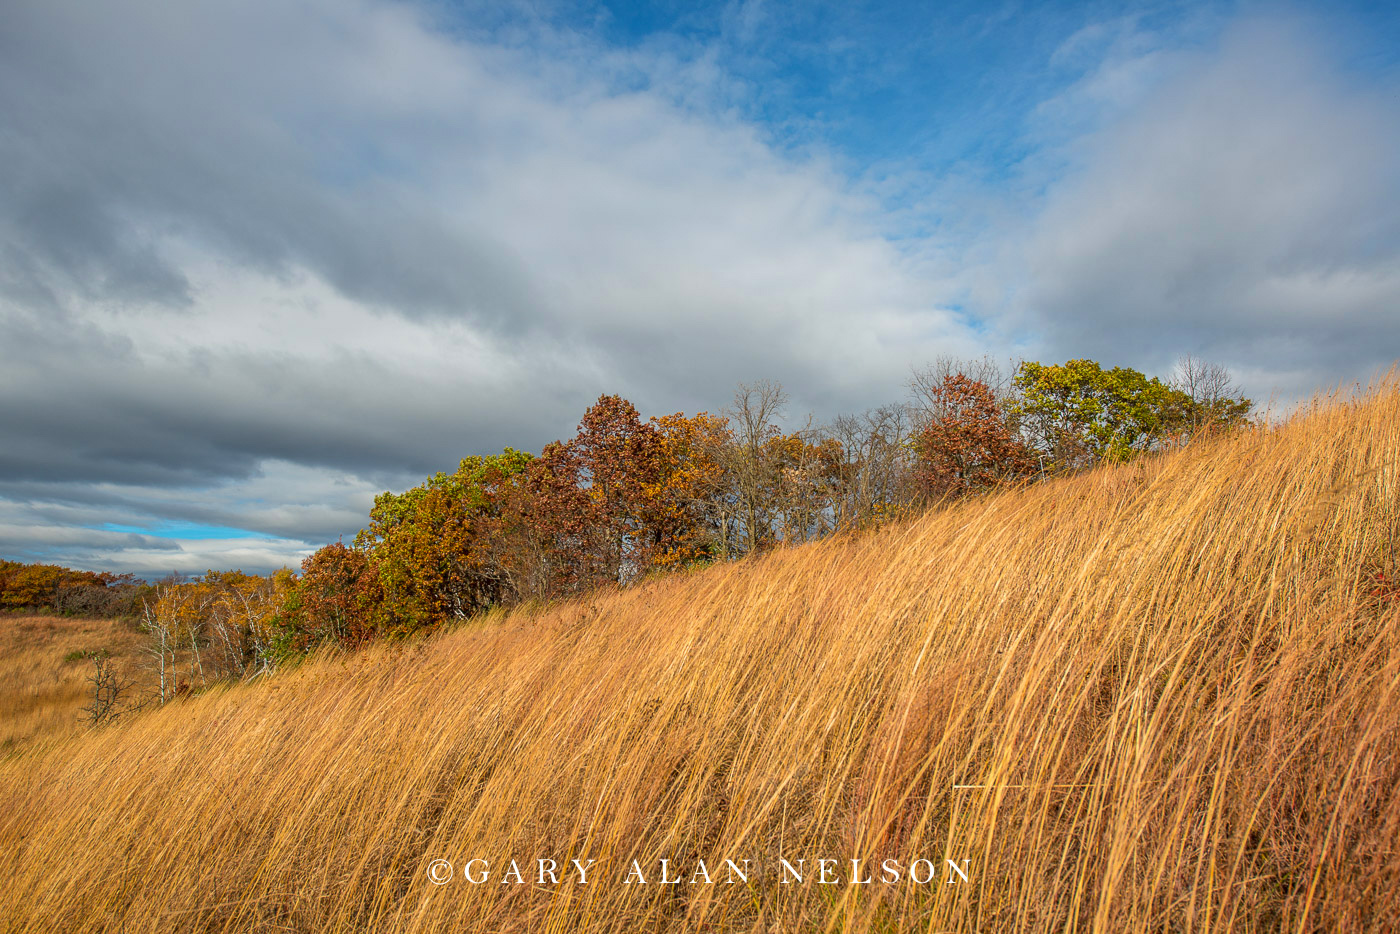 Goat prairie in the driftless area in autumn, Great River Bluffs State Park, Minnesota